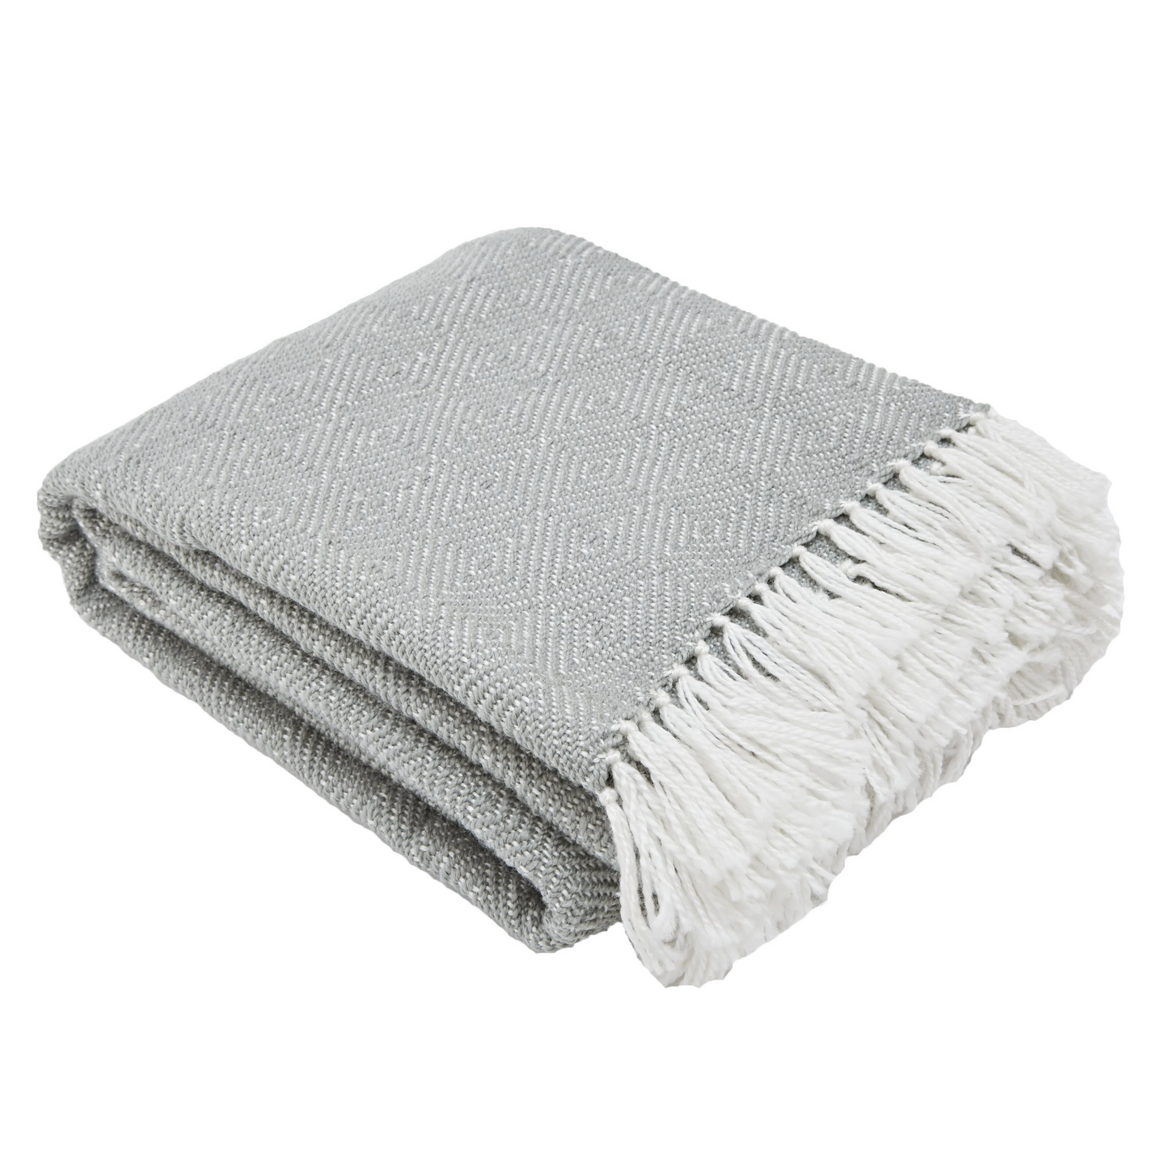 DOVE GREY ECO-FRIENDLY BLANKET